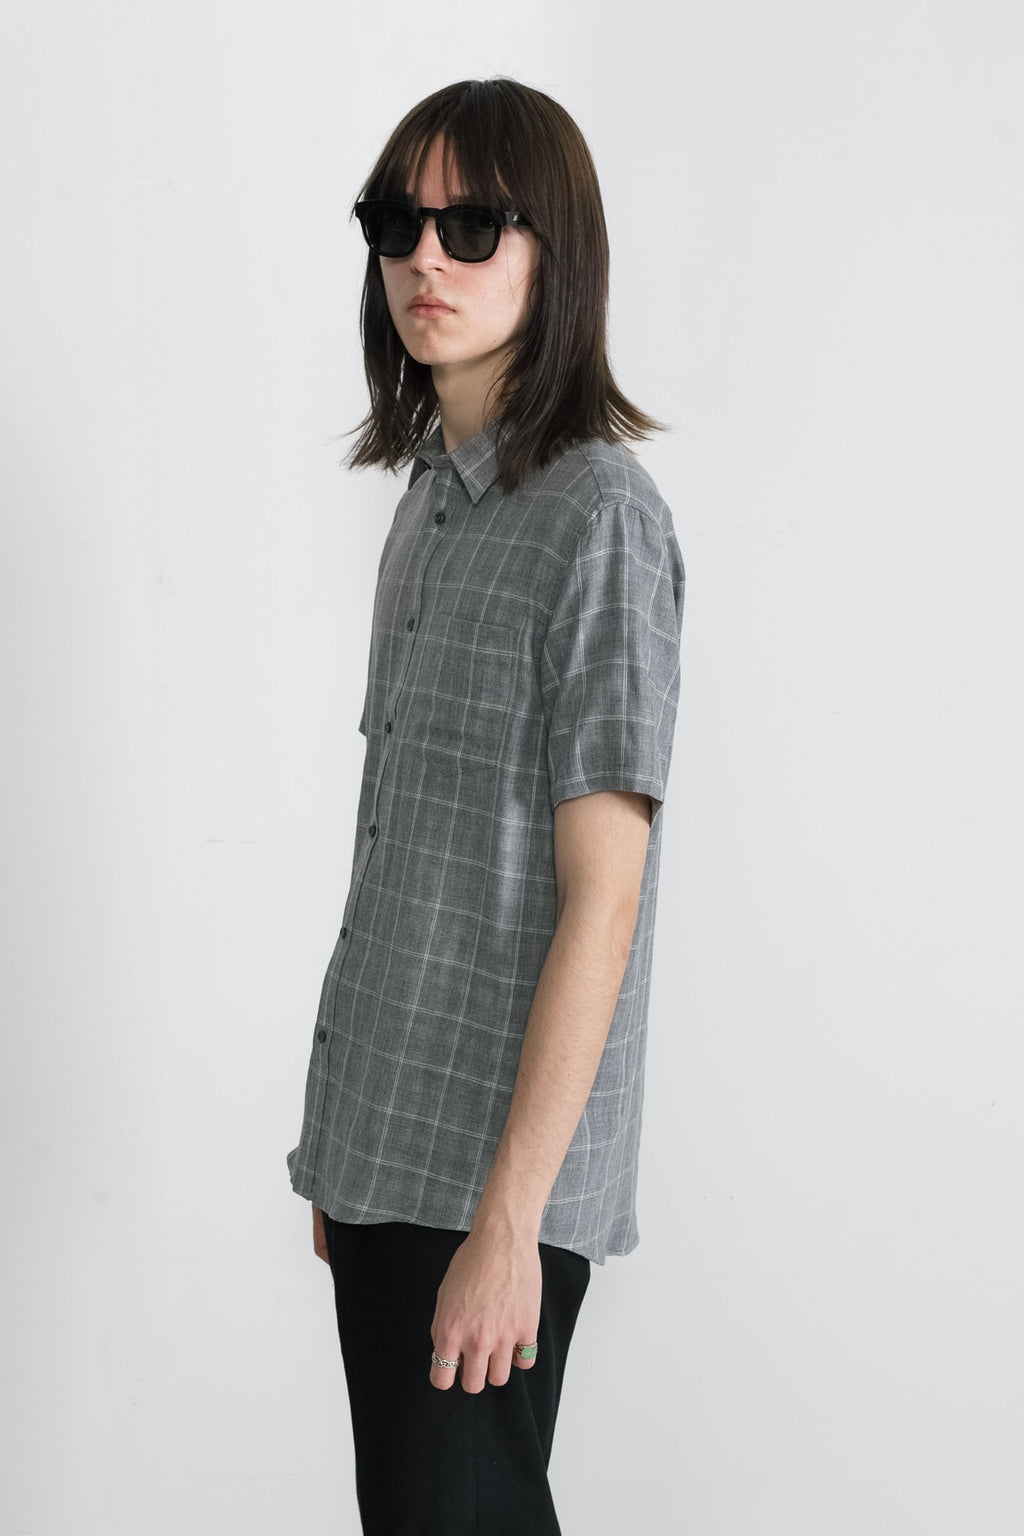 Japanese Double Face Plaid in Grey 003